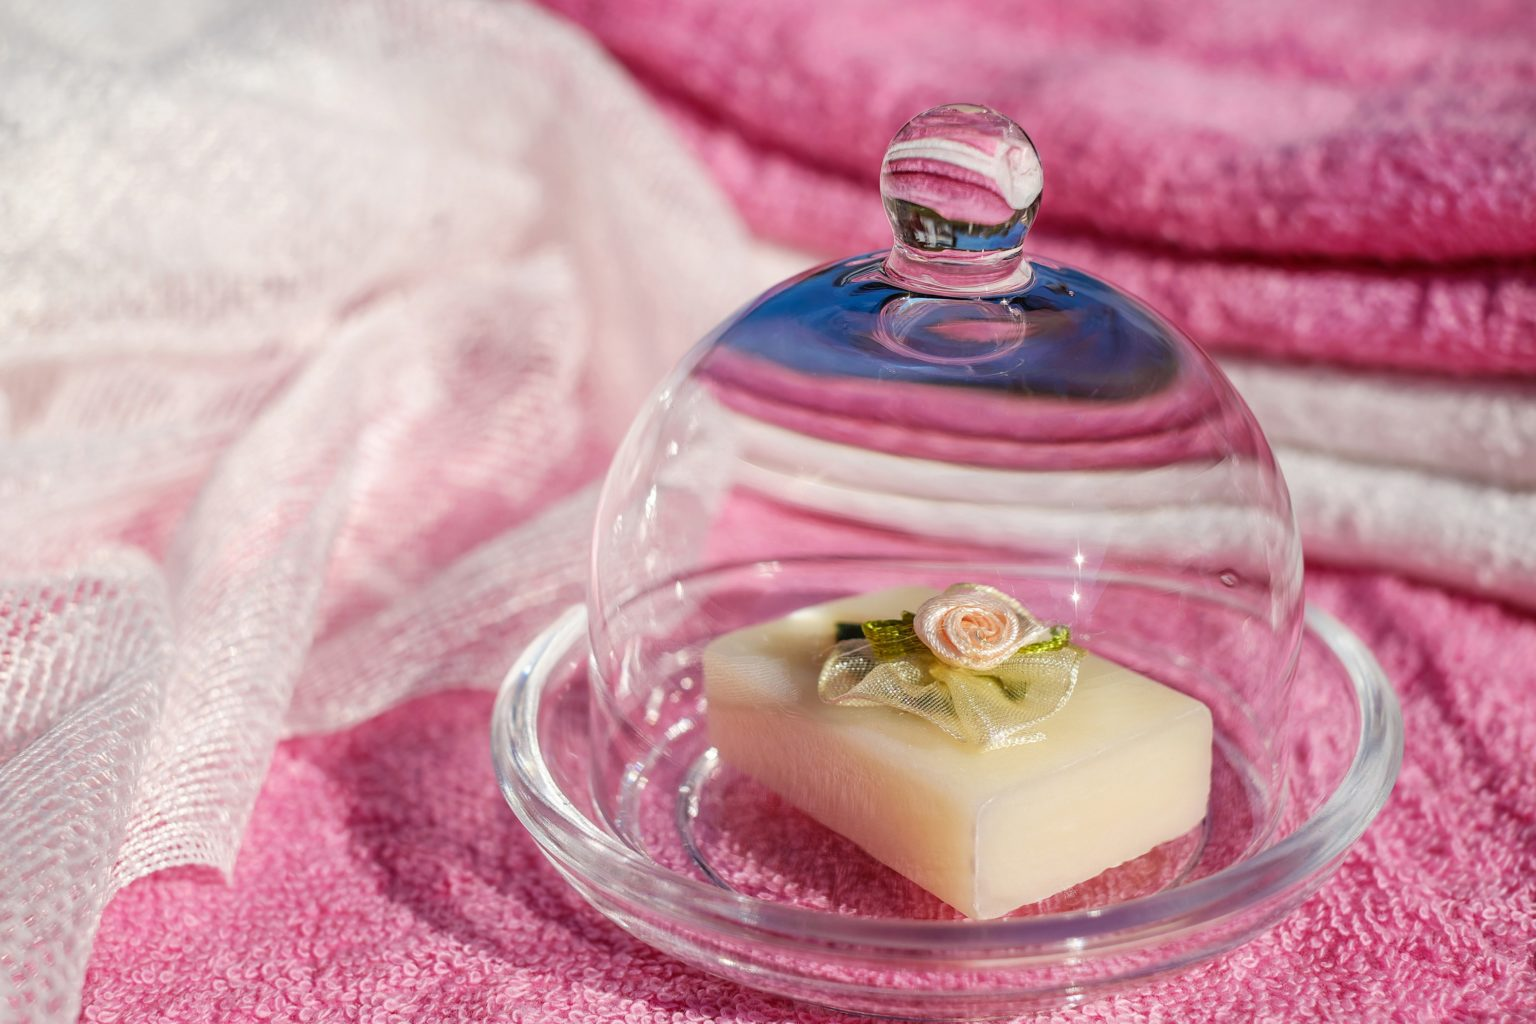 16 Dreamy Bath and Beauty Product DIYs That Are Perfect For Beginners